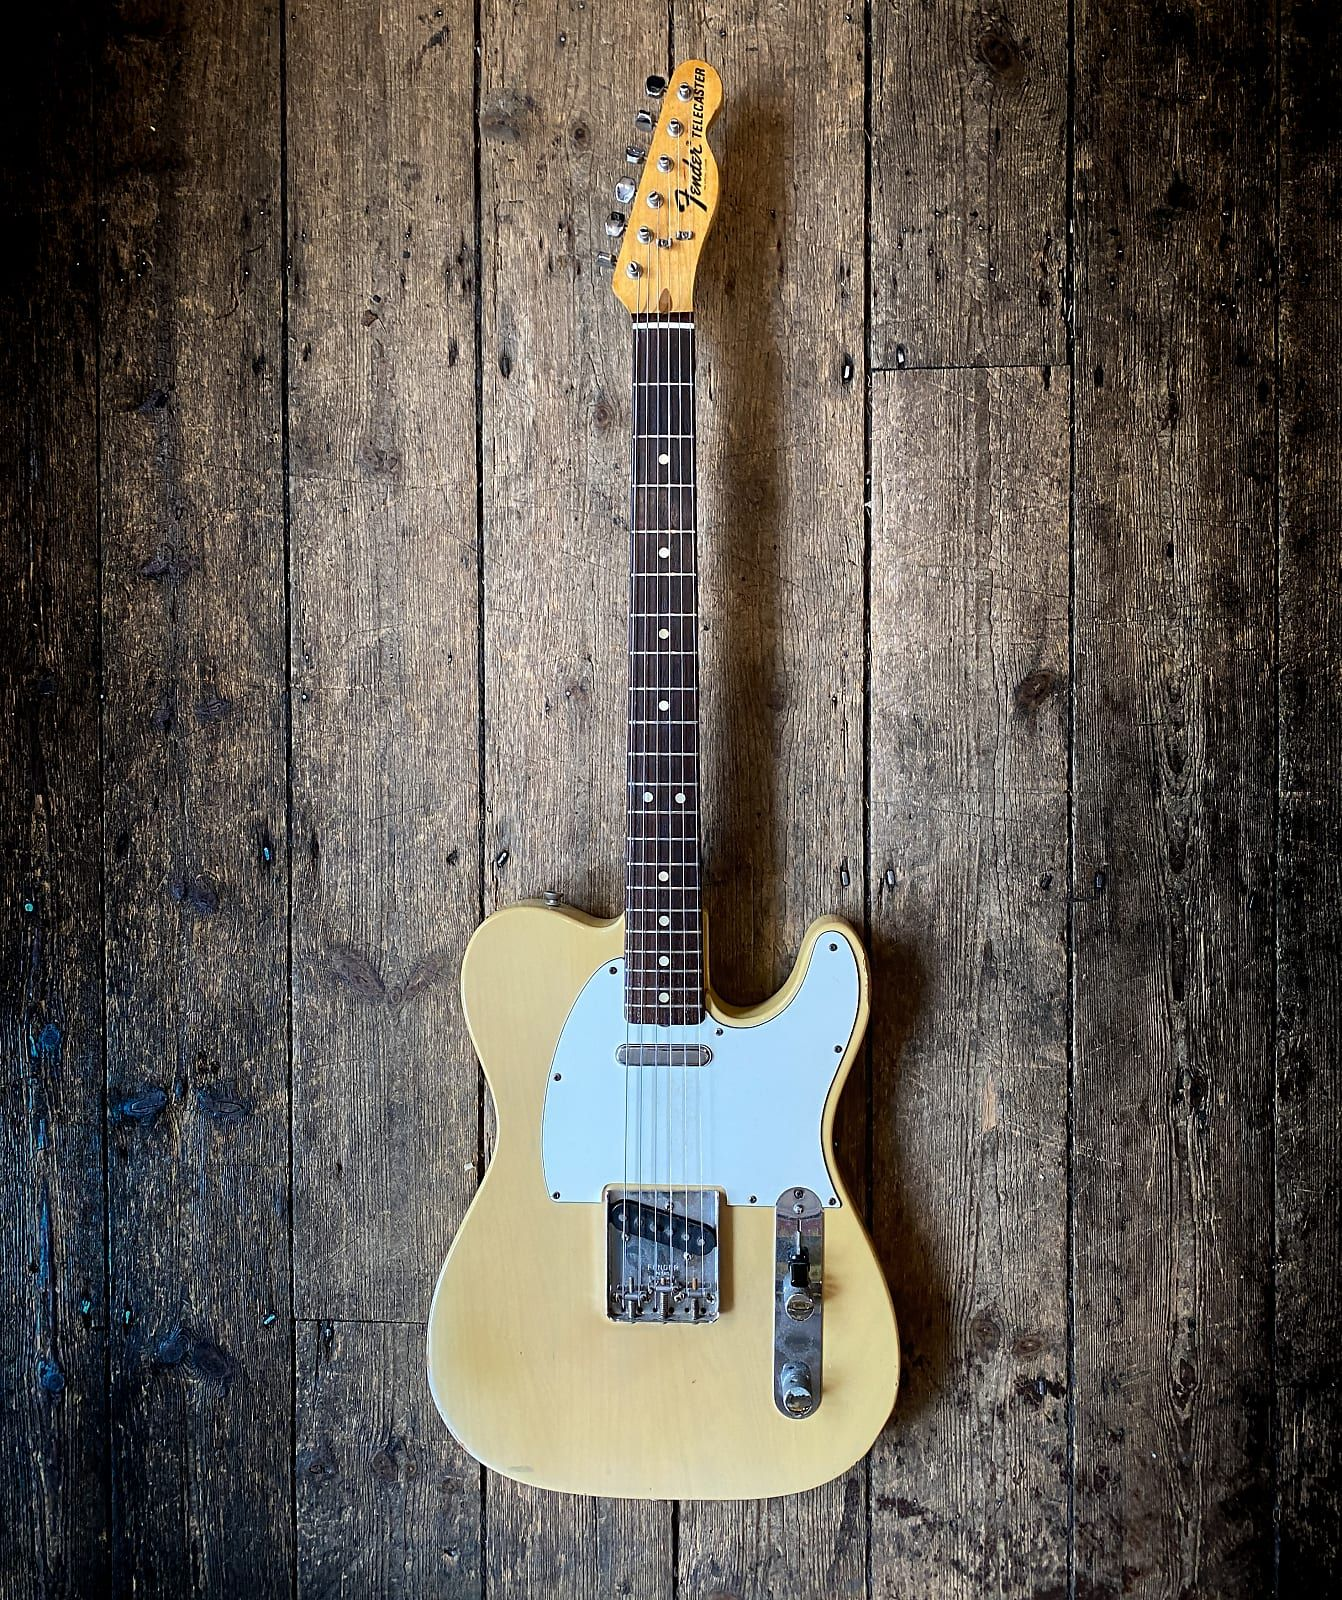 1973 Fender Blonde White Guard Telecaster With Ahrd Shell Case New Kings Road Vintage Guitar Emporium Reverb In 2021 Telecaster Vintage Guitars Fender